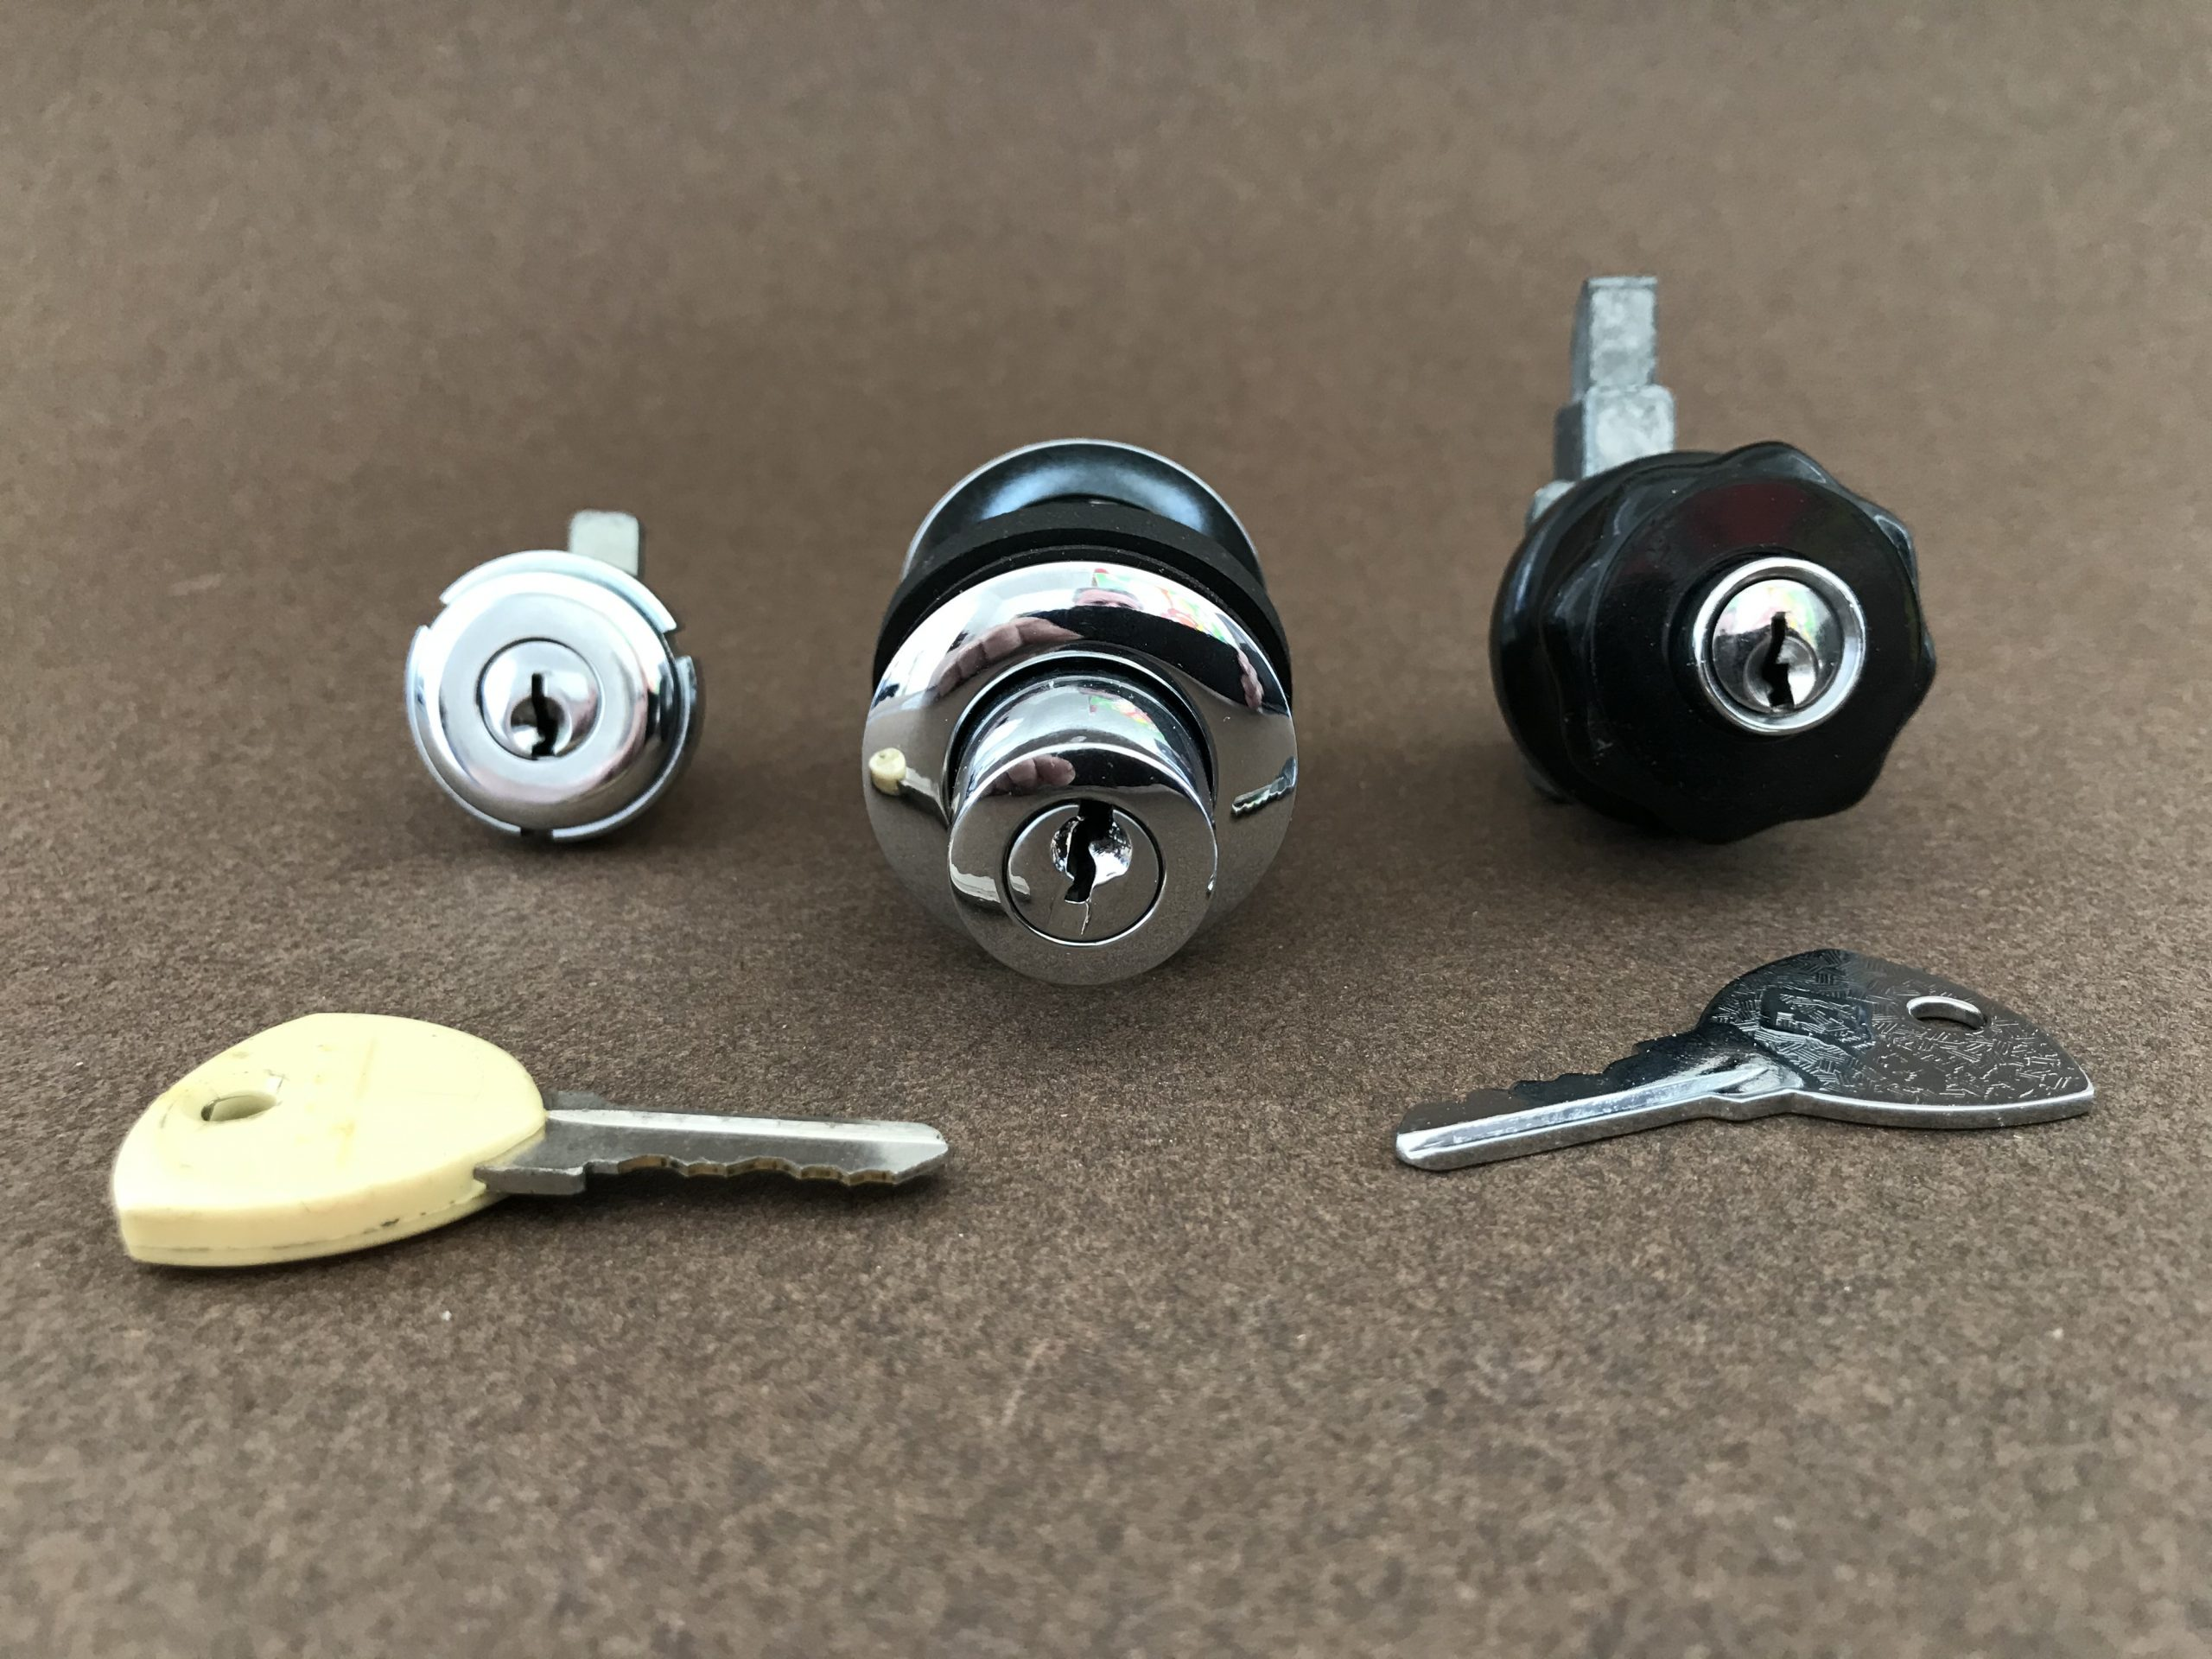 Flaminia Zagato Lock Set Image